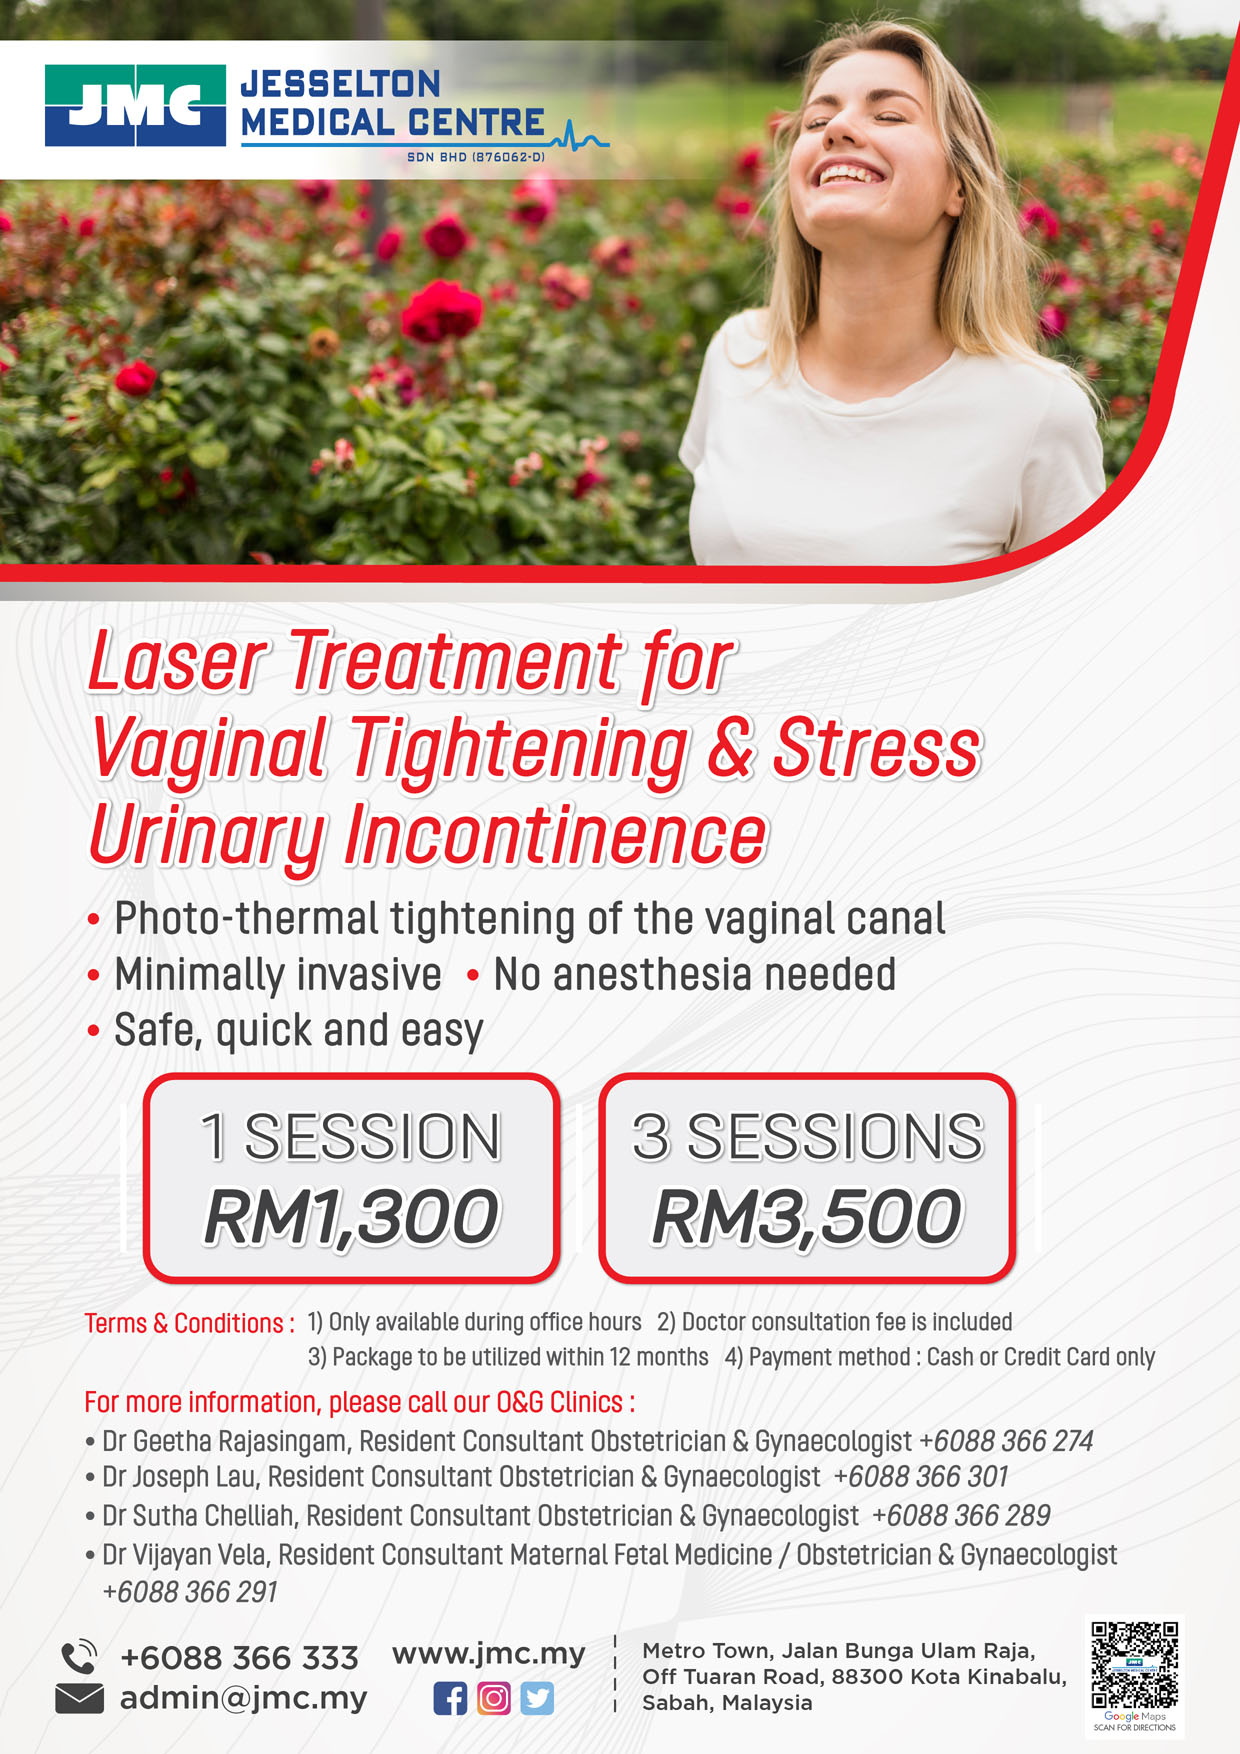 Laser Treatment for Vaginal Tightening & Stress Urinary Incontinence